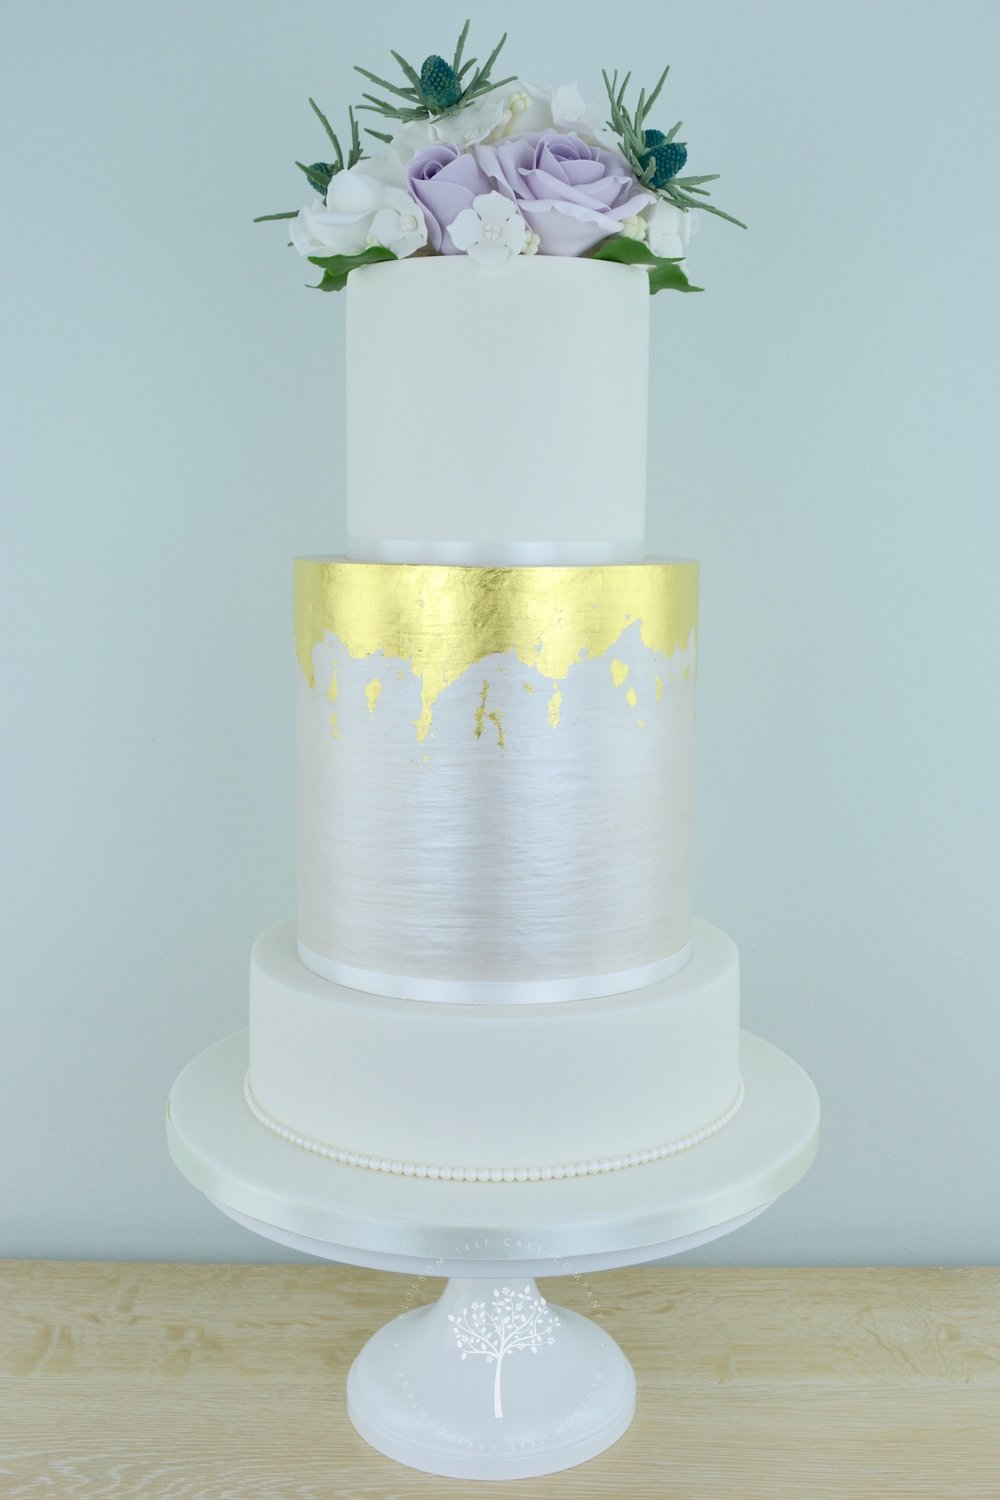 Sea Holly and Roses wedding cake by Blossom Tree Cake Company Harrogate North Yorkshire.jpg